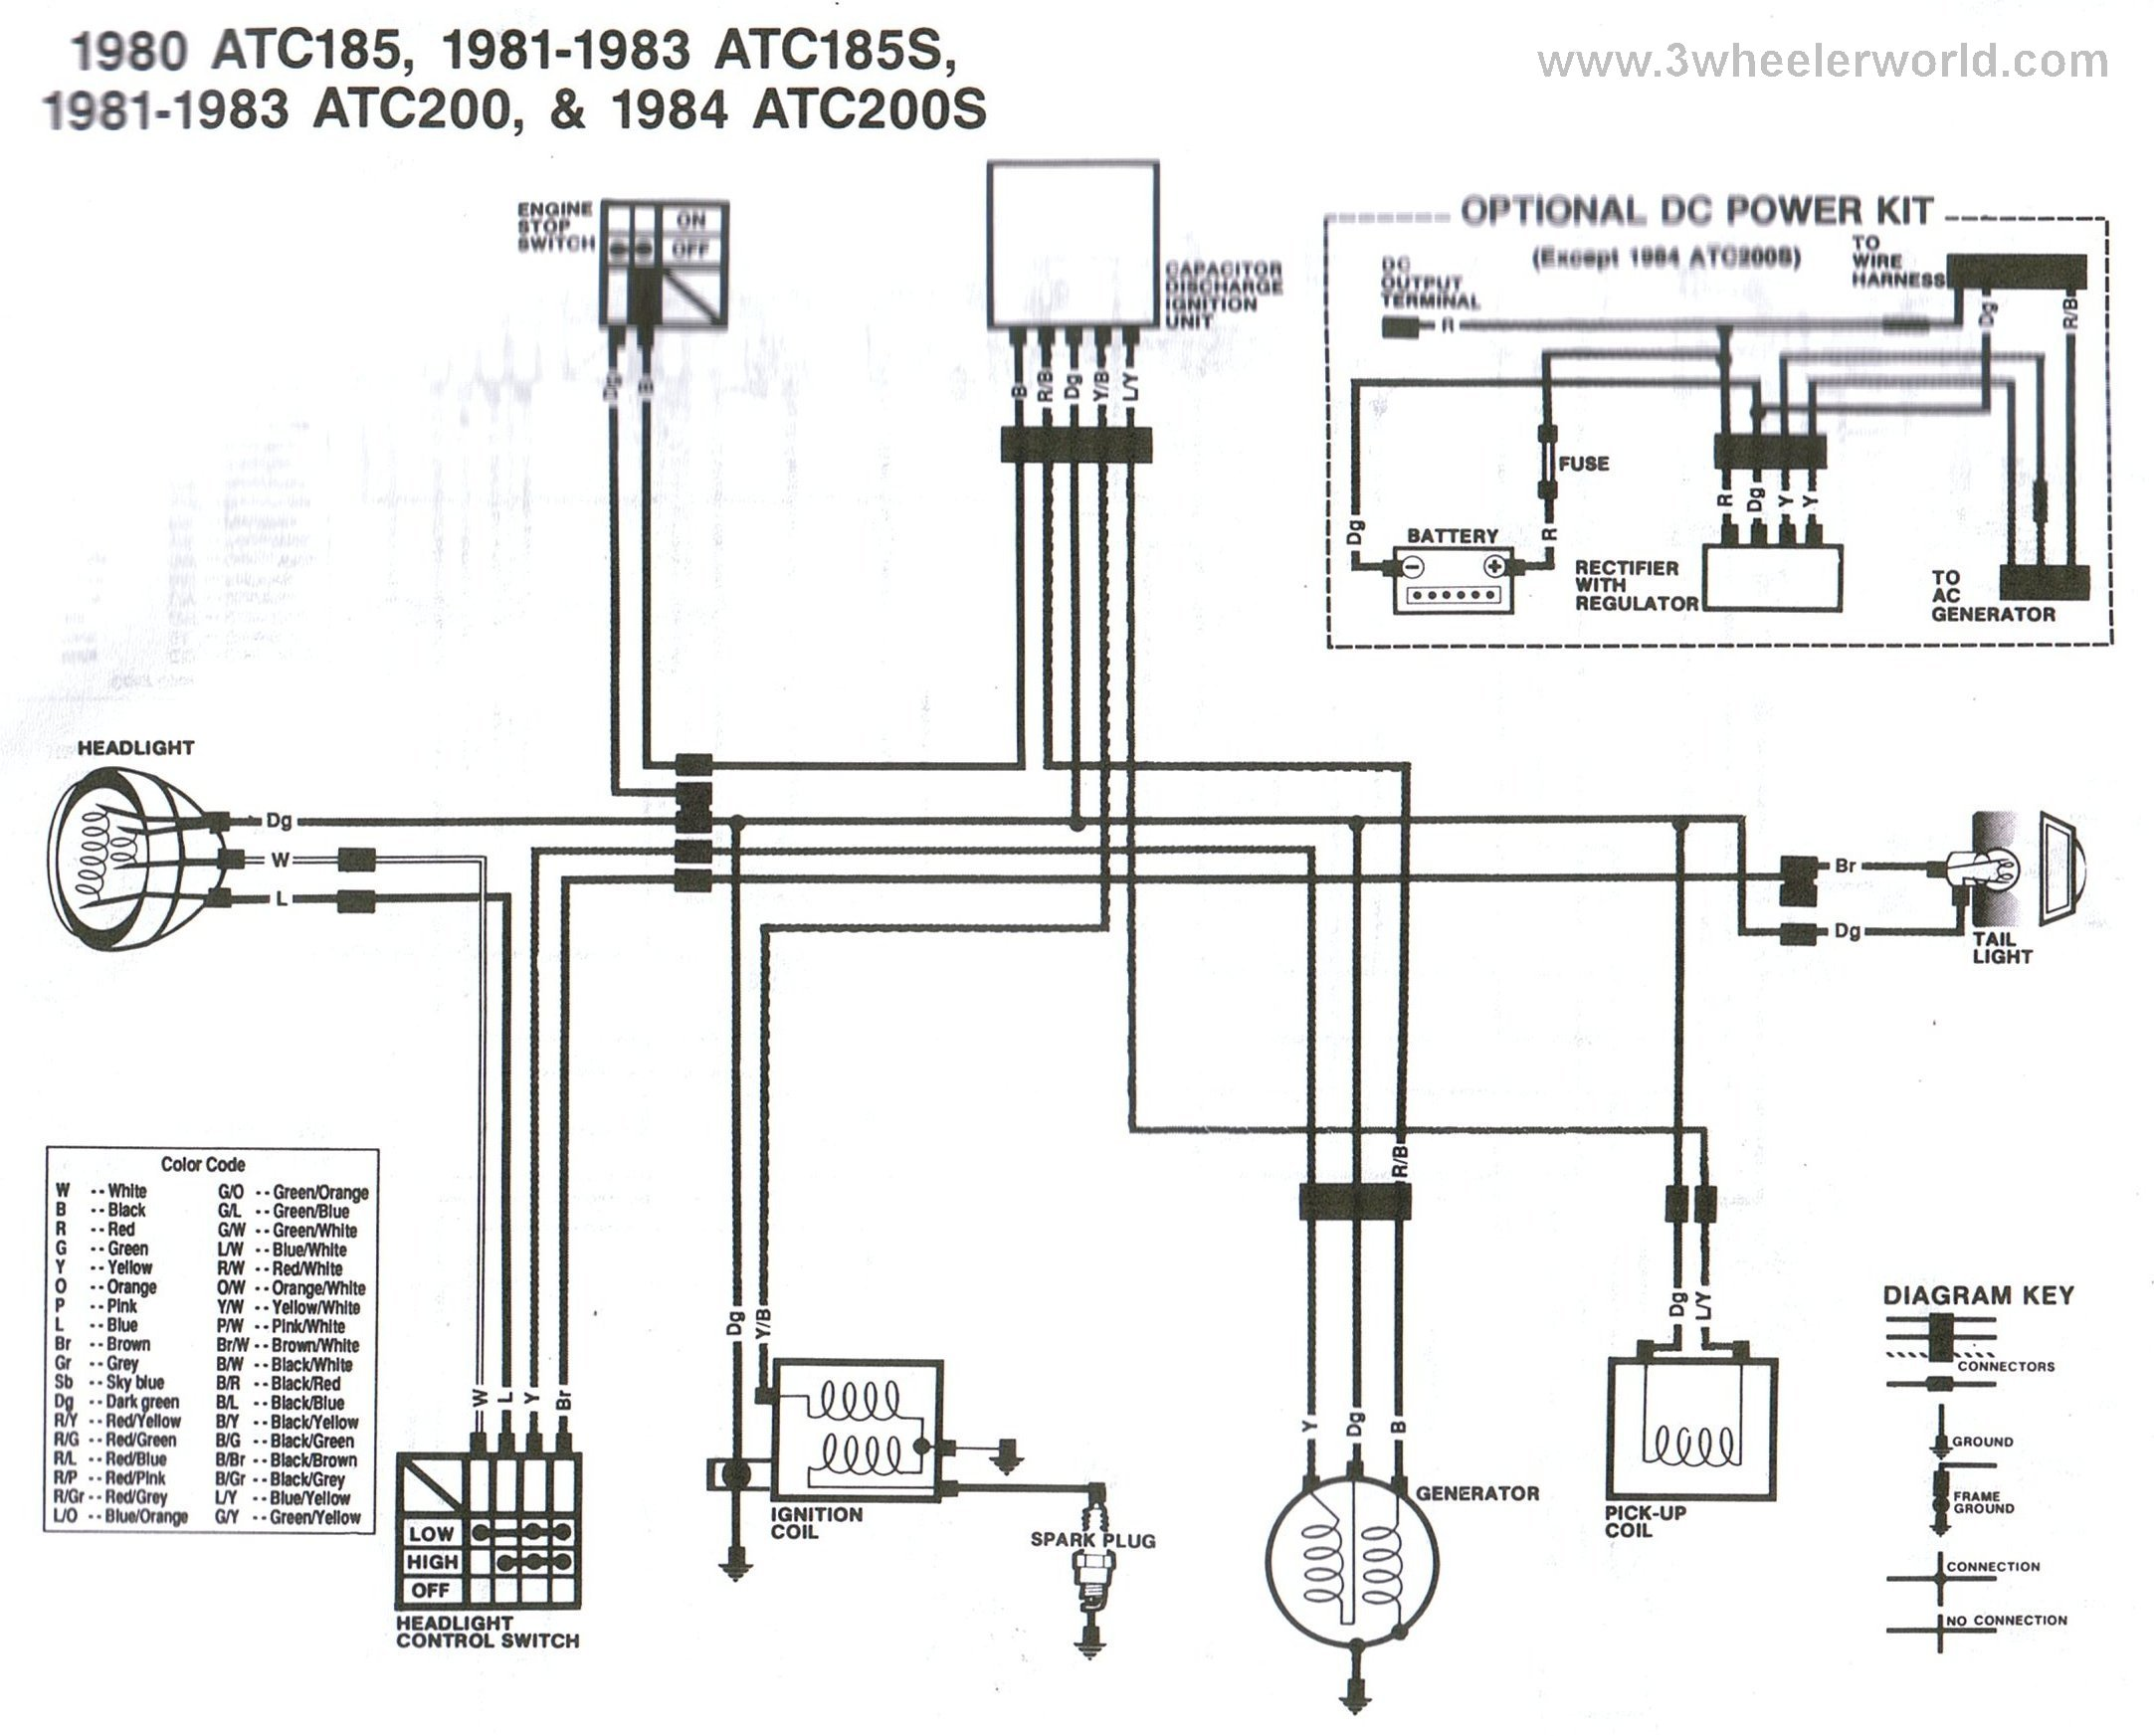 ATC185x185Sx200x200Sx80Thru84 3 wheeler world tech help honda wiring diagrams 1984 honda big red 200es wiring diagram at sewacar.co